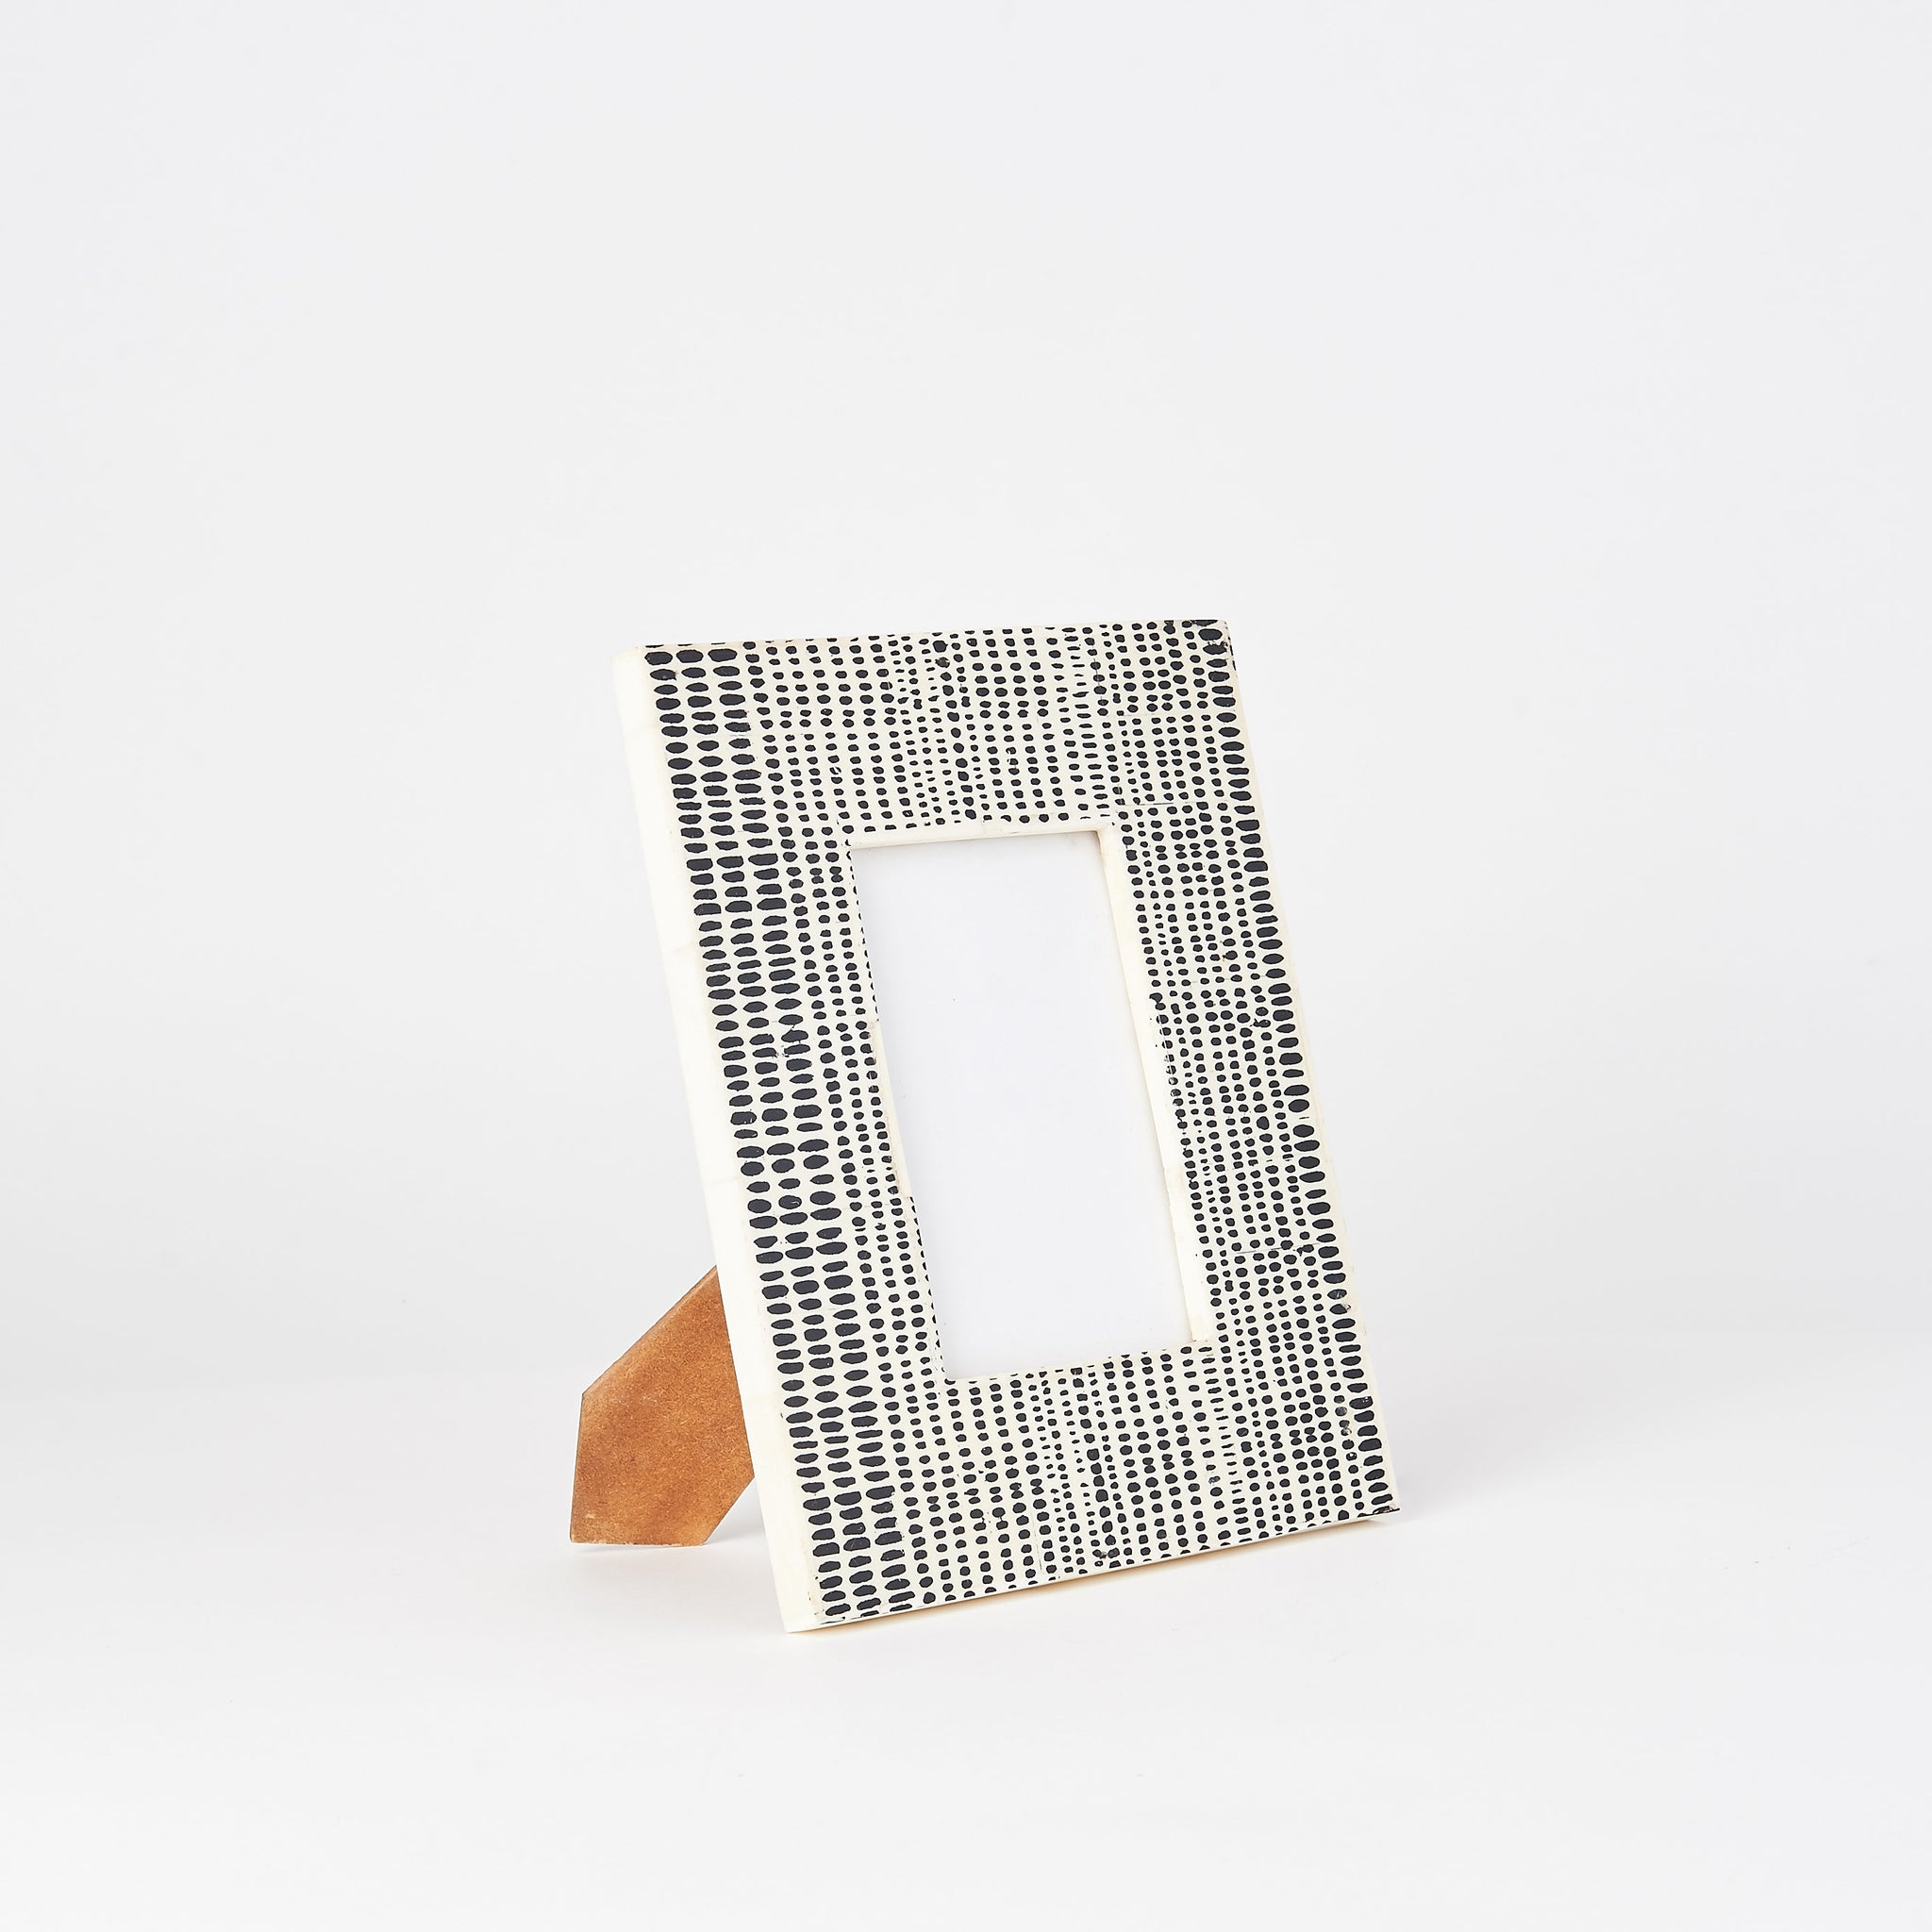 Dashed Photo Frame